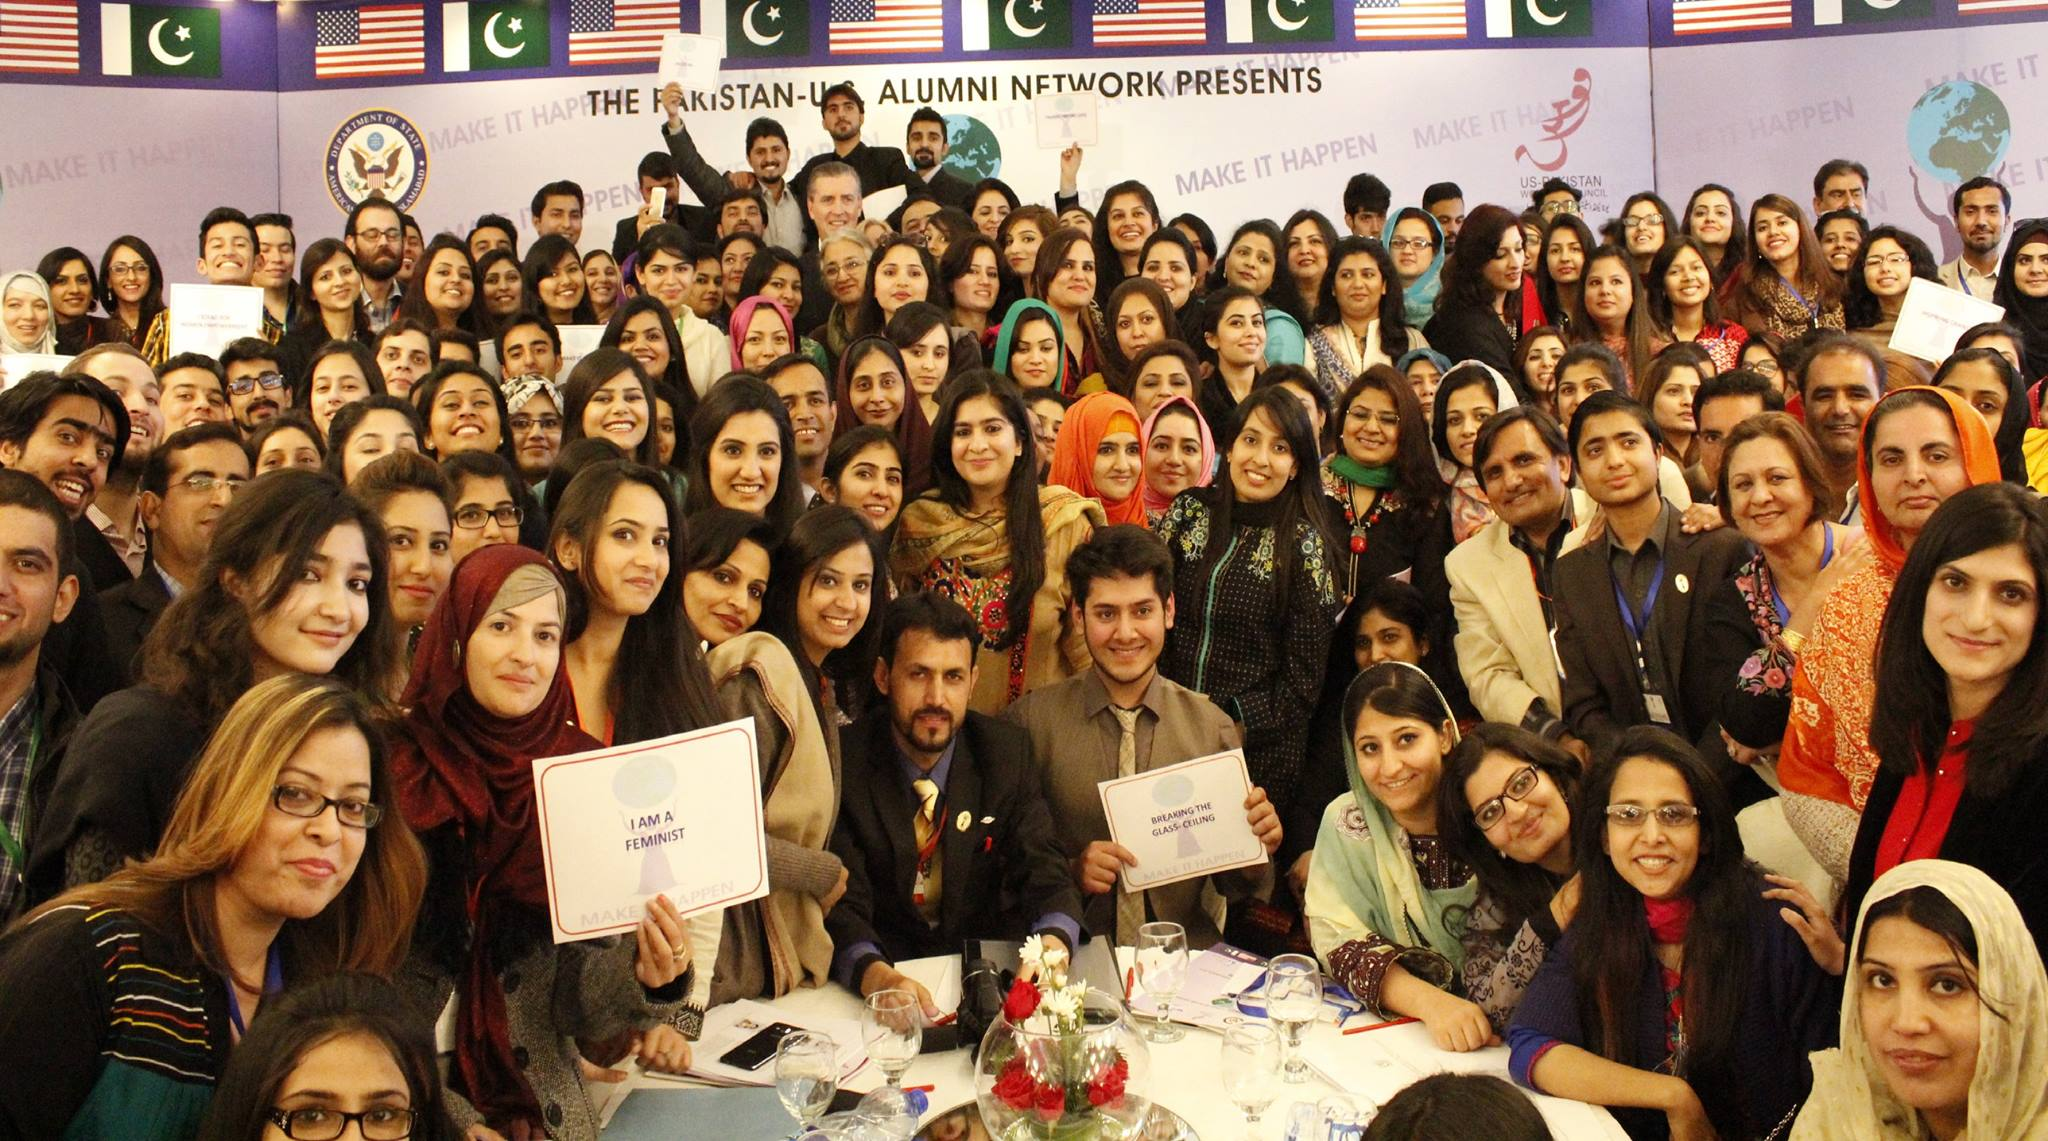 U.S. Ambassador to Pakistan, Richard Olson, with members of the Pakistan-U.S. Alumni Network at the opening ceremony of the 2015 International Women's Empowerment Conference